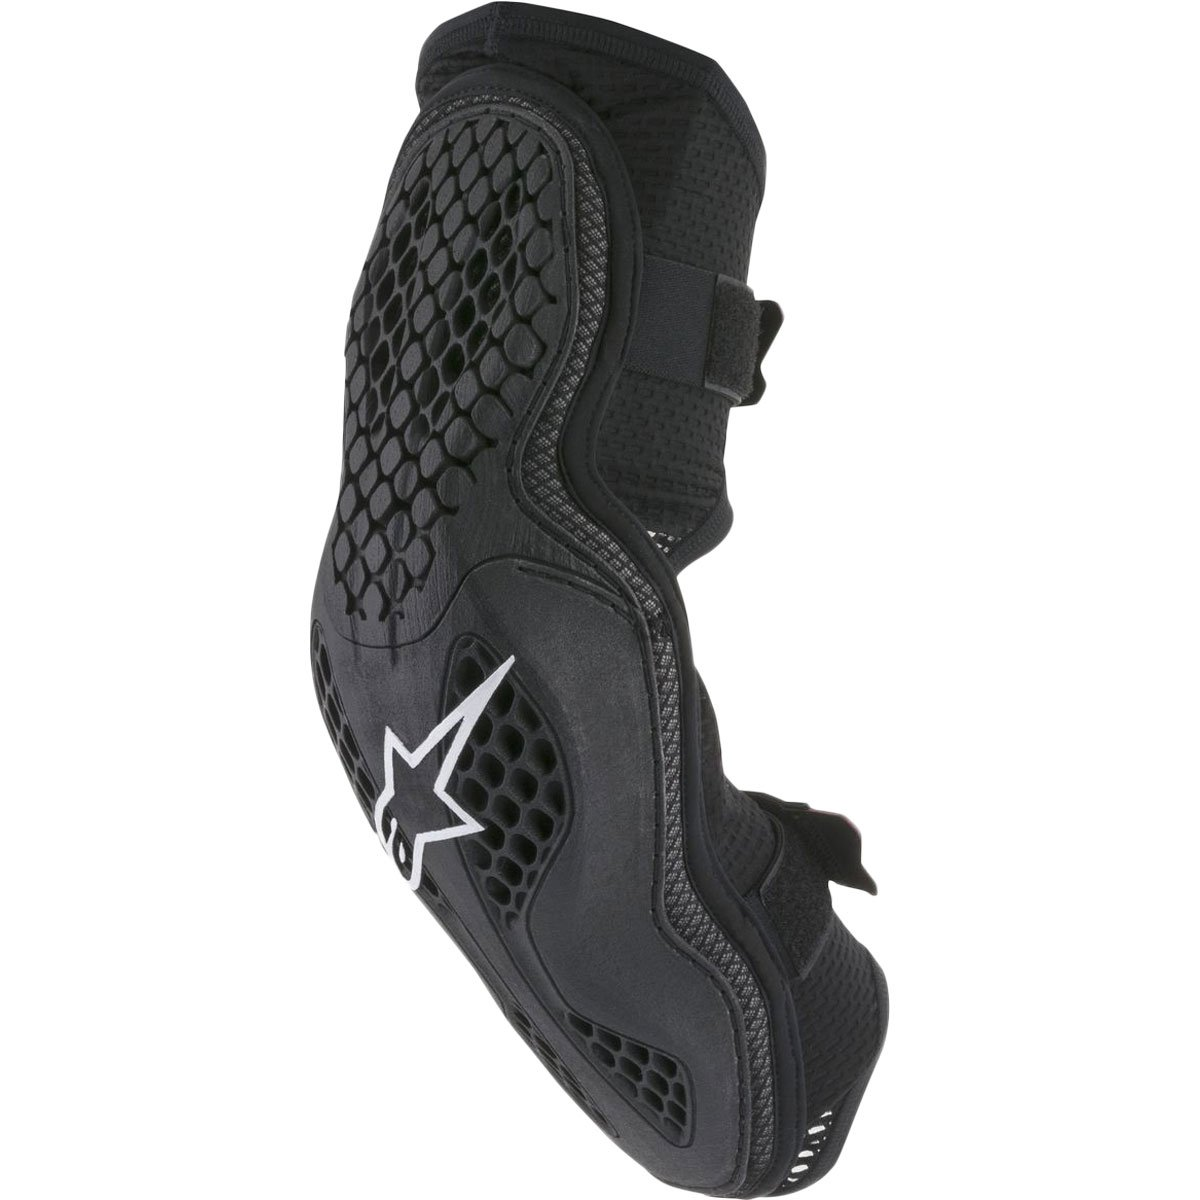 Alpinestars Sequence Elbow Guards-S/M